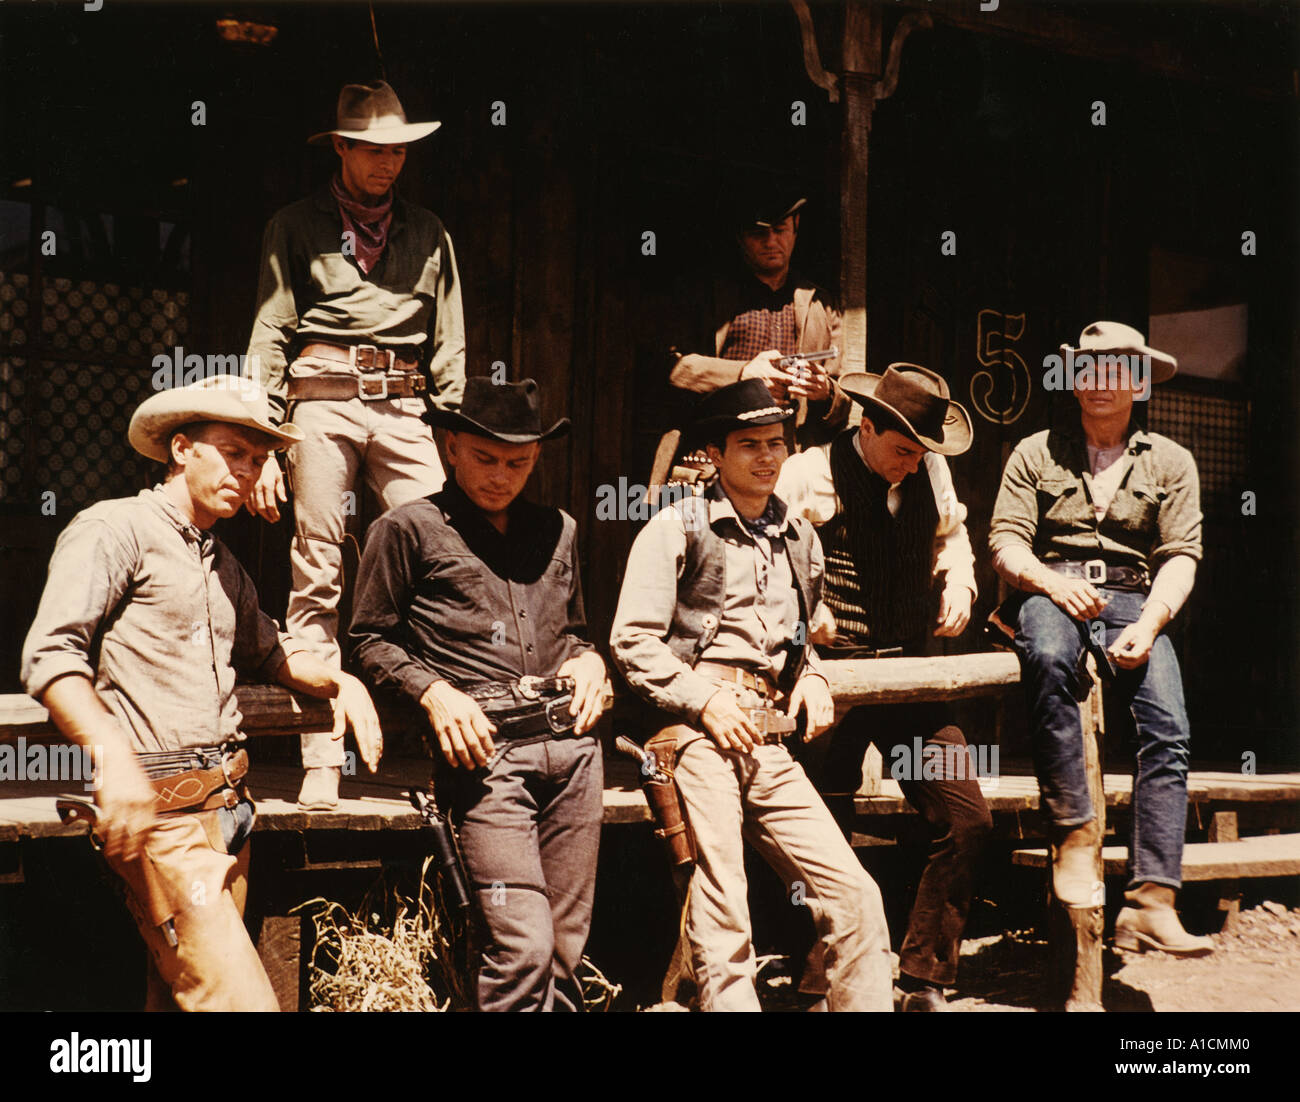 THE MAGNIFICENT SEVEN - Stock Image